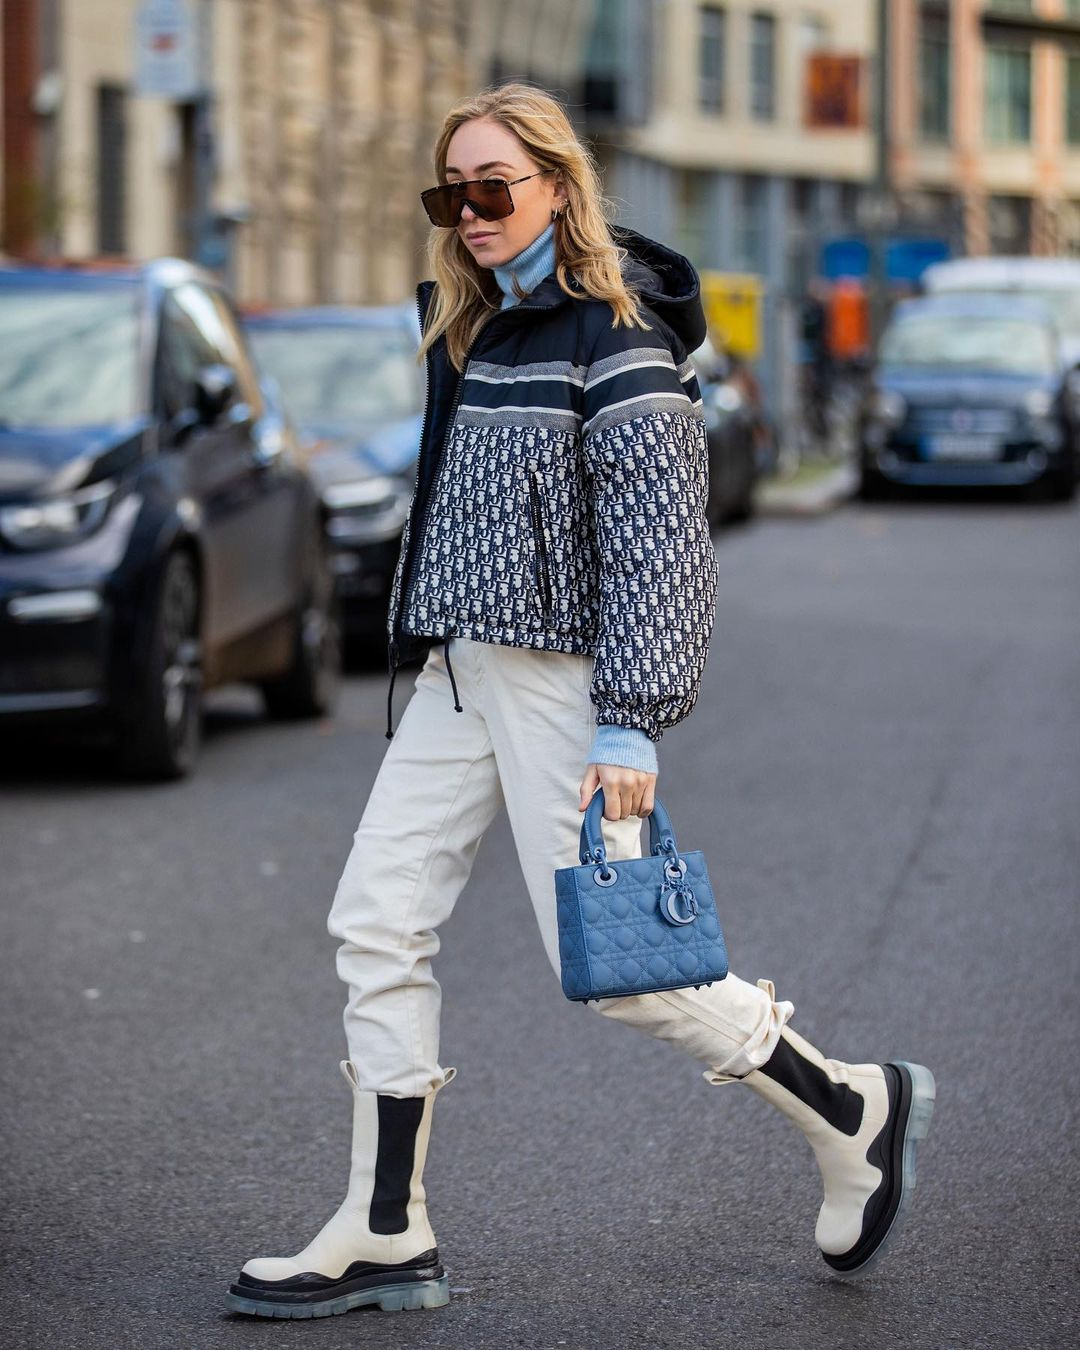 sonia-lyson-dior-reversible-cropped-down-jacket-blue-and-ecru-instagram